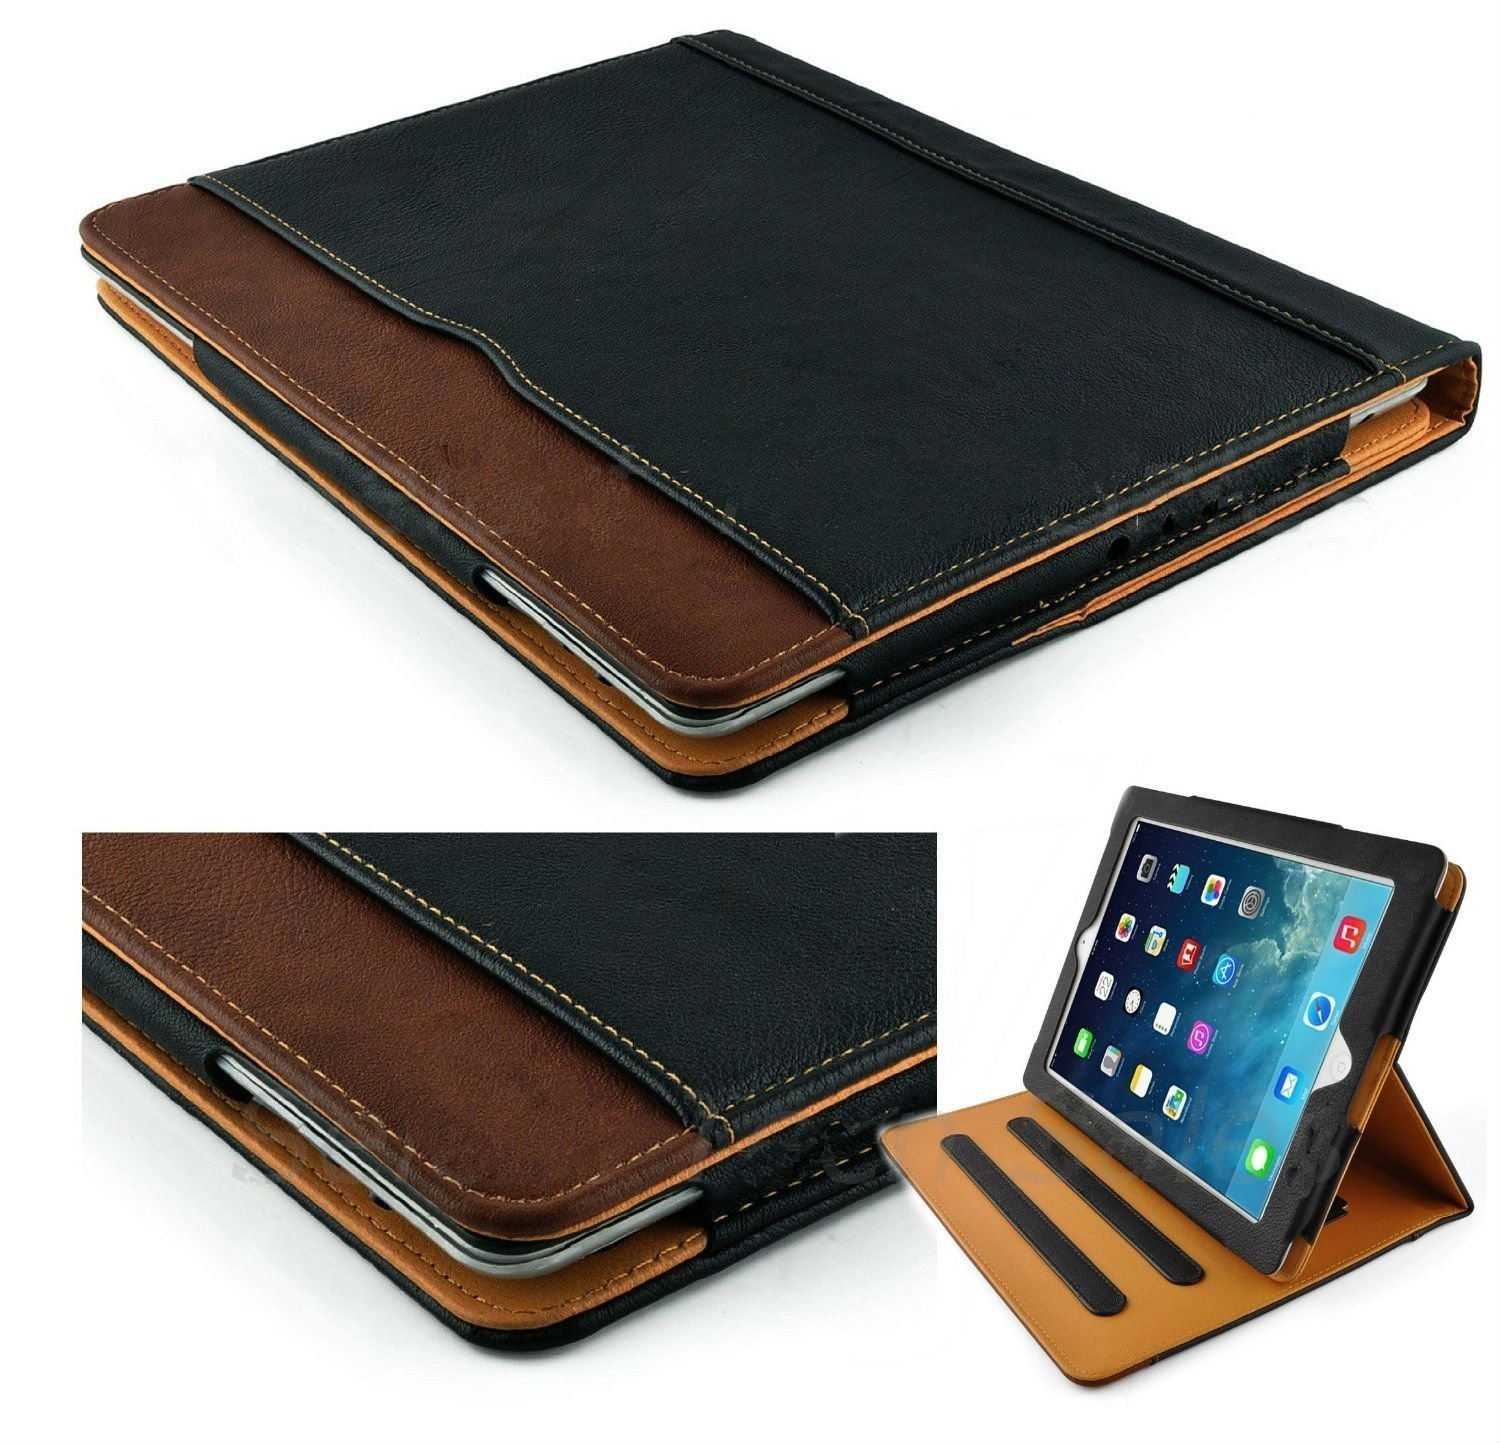 New S-Tech Black and Tan Apple iPad 9.7 5th Generation 2017 / 6th Generation 2018 Model Soft Leather Wallet Smart Cover with Sleep/Wake Feature Flip Case 4328636184